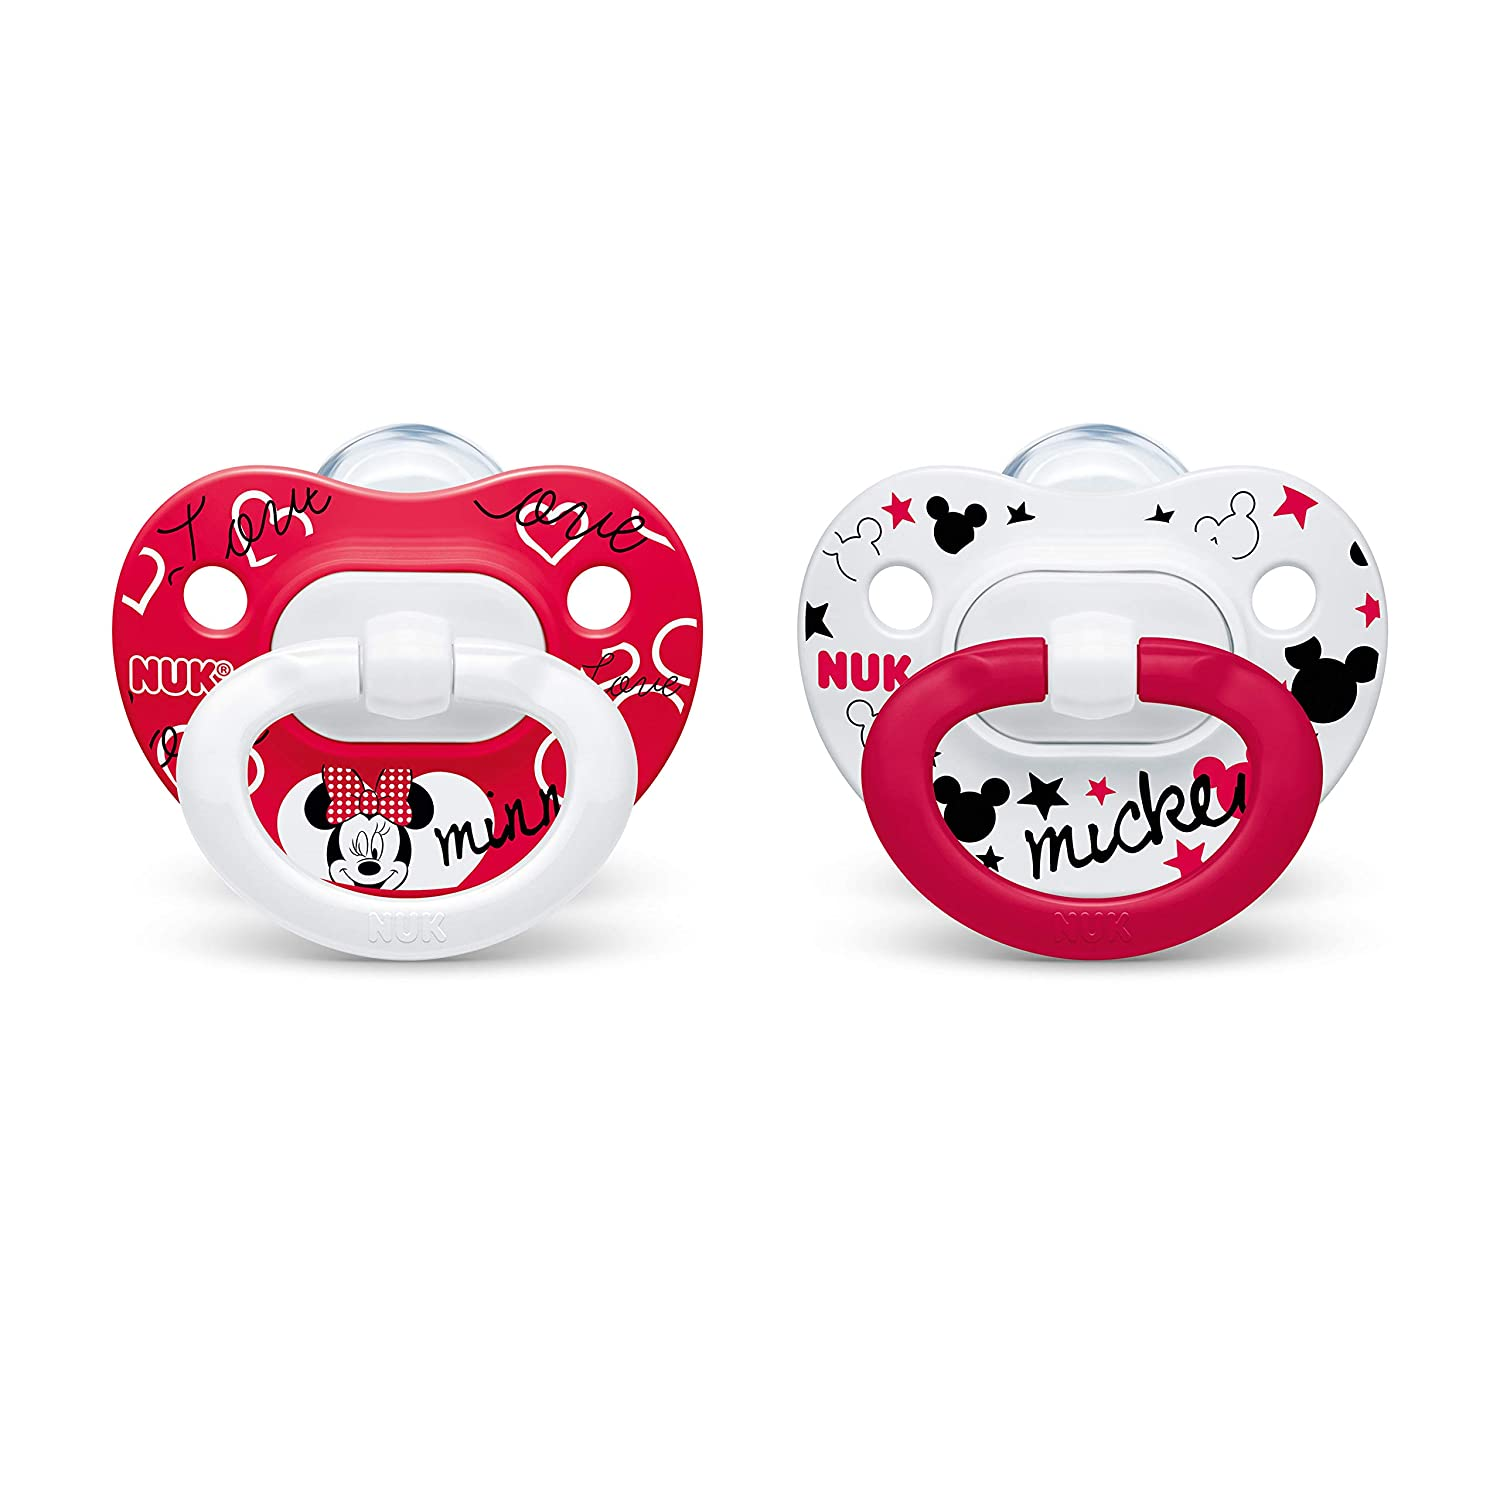 NUK Disney Minnie Mouse Orthodontic Pacifiers, 0-6 Months, 2-Pack